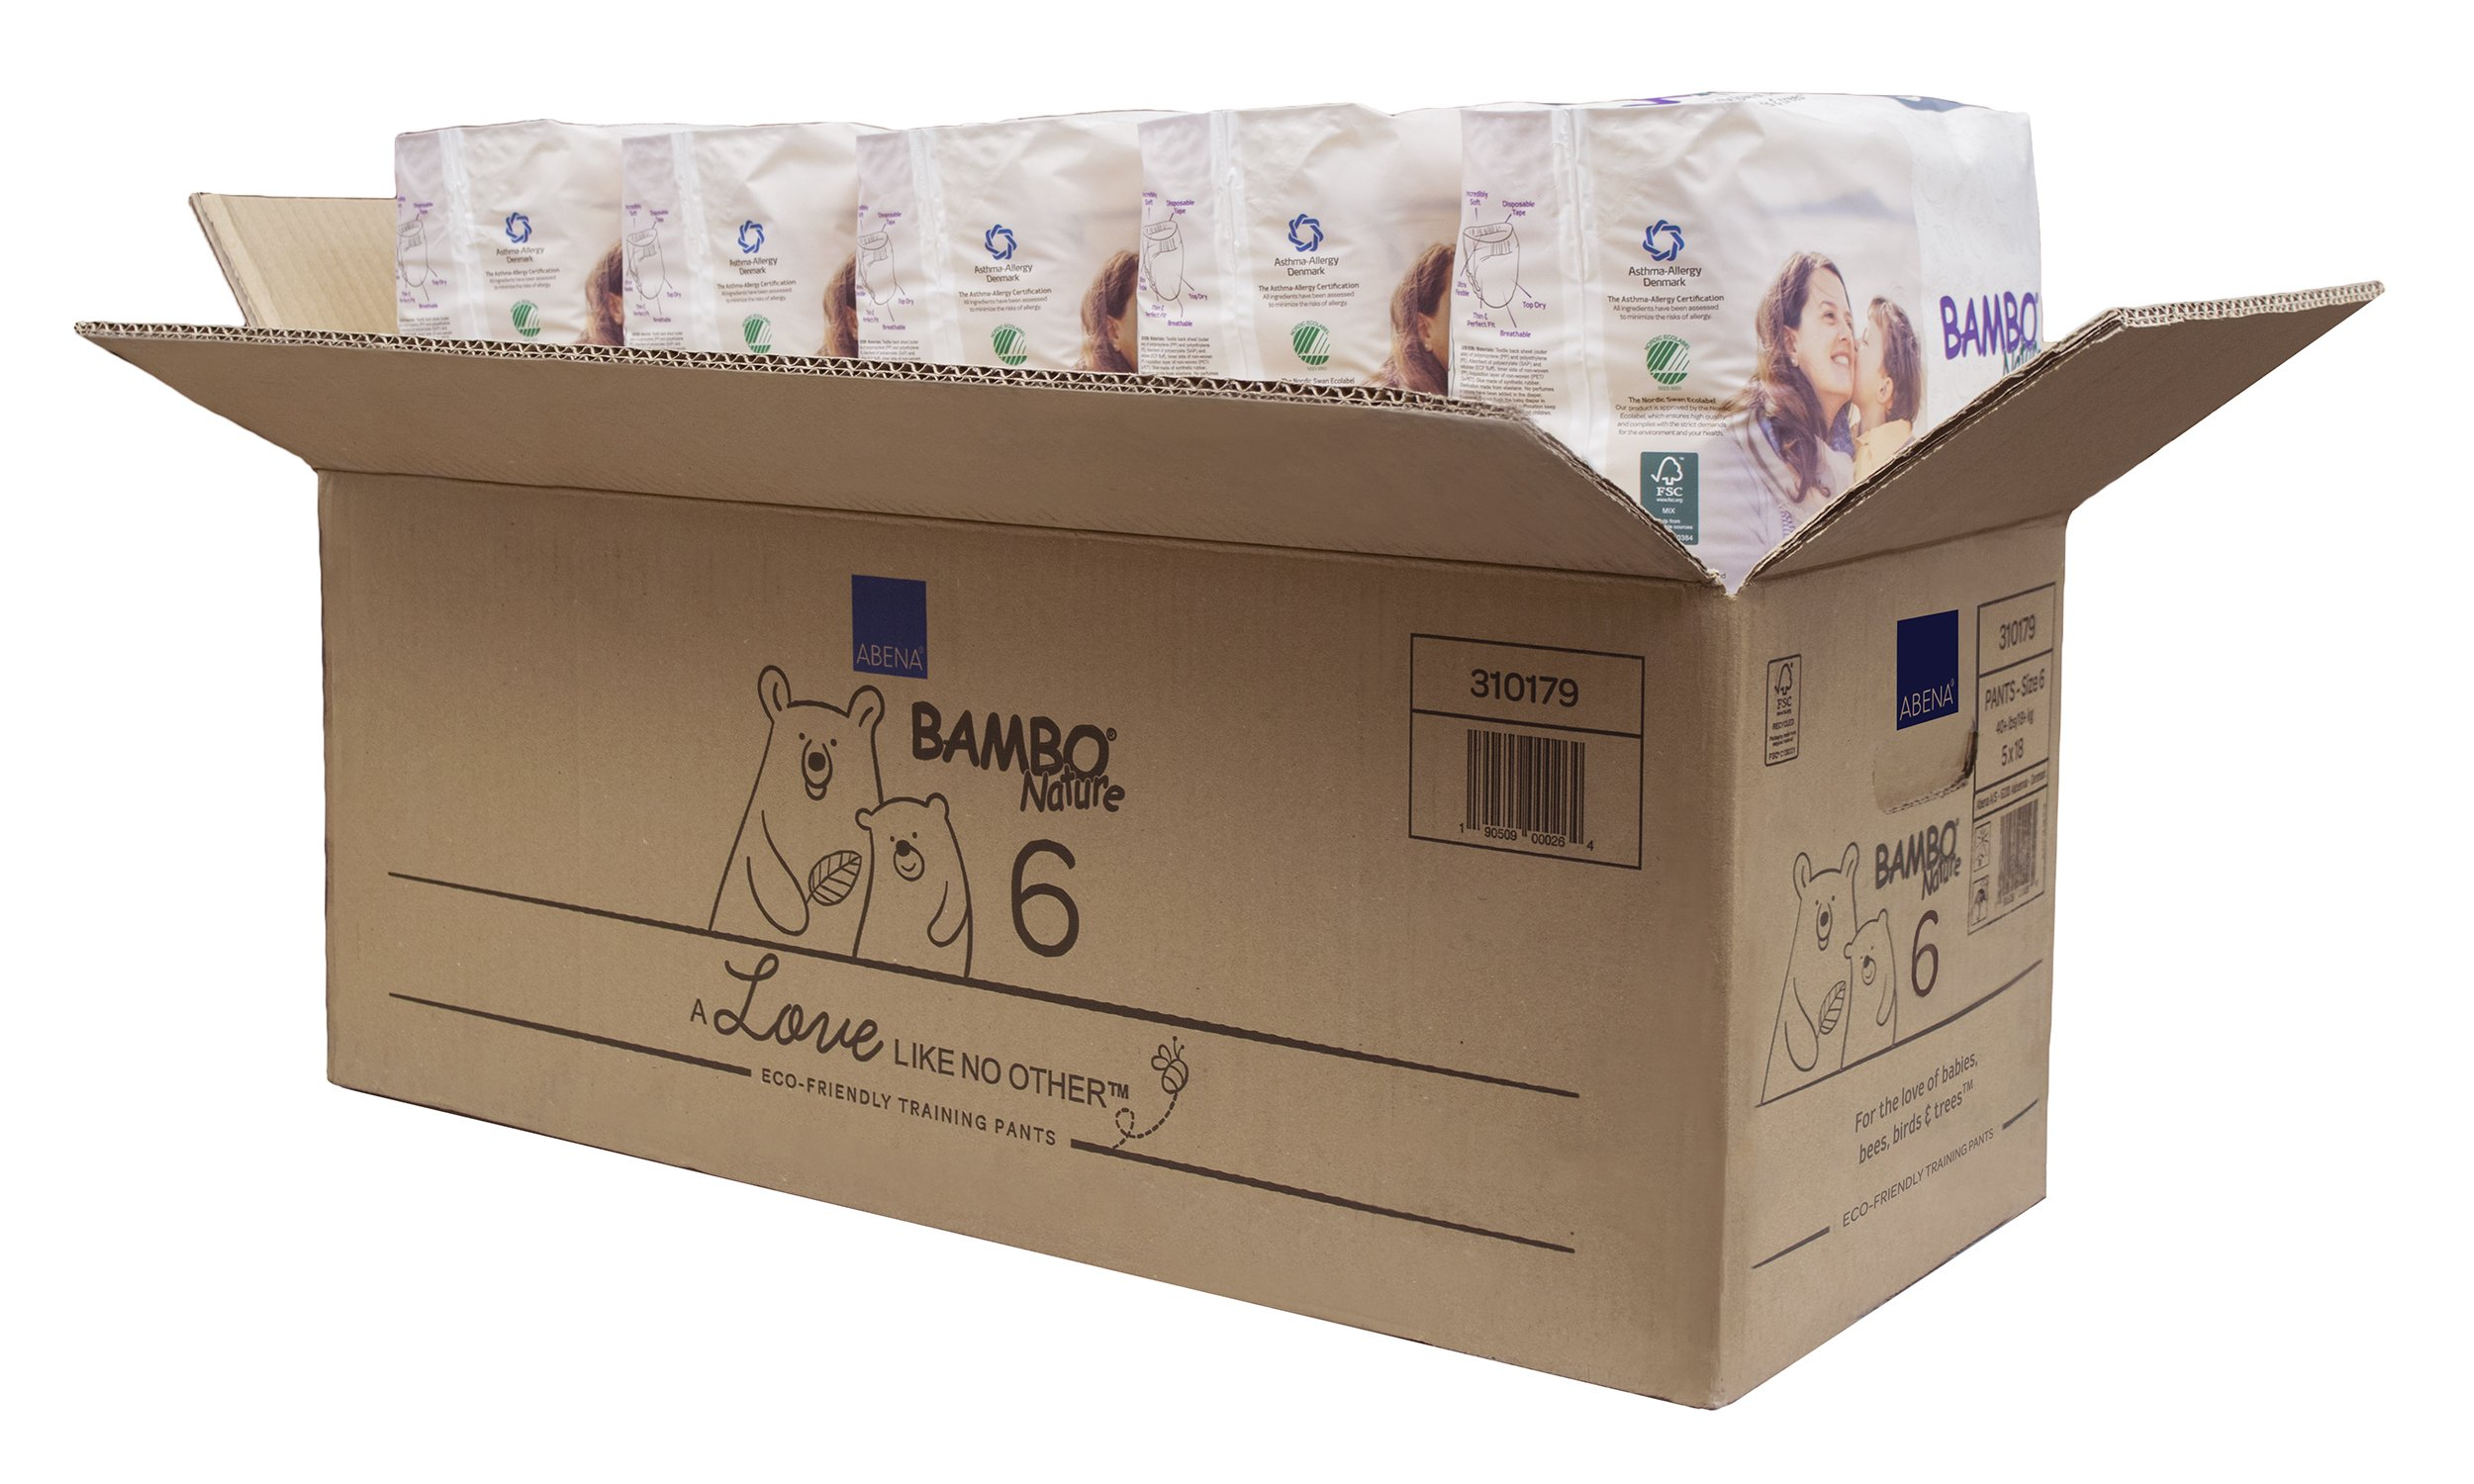 Bambo Nature Eco Friendly Premium Training Pants for Sensitive Skin, Size 6 (40+ lbs), 90 Count (5 Packs of 18)